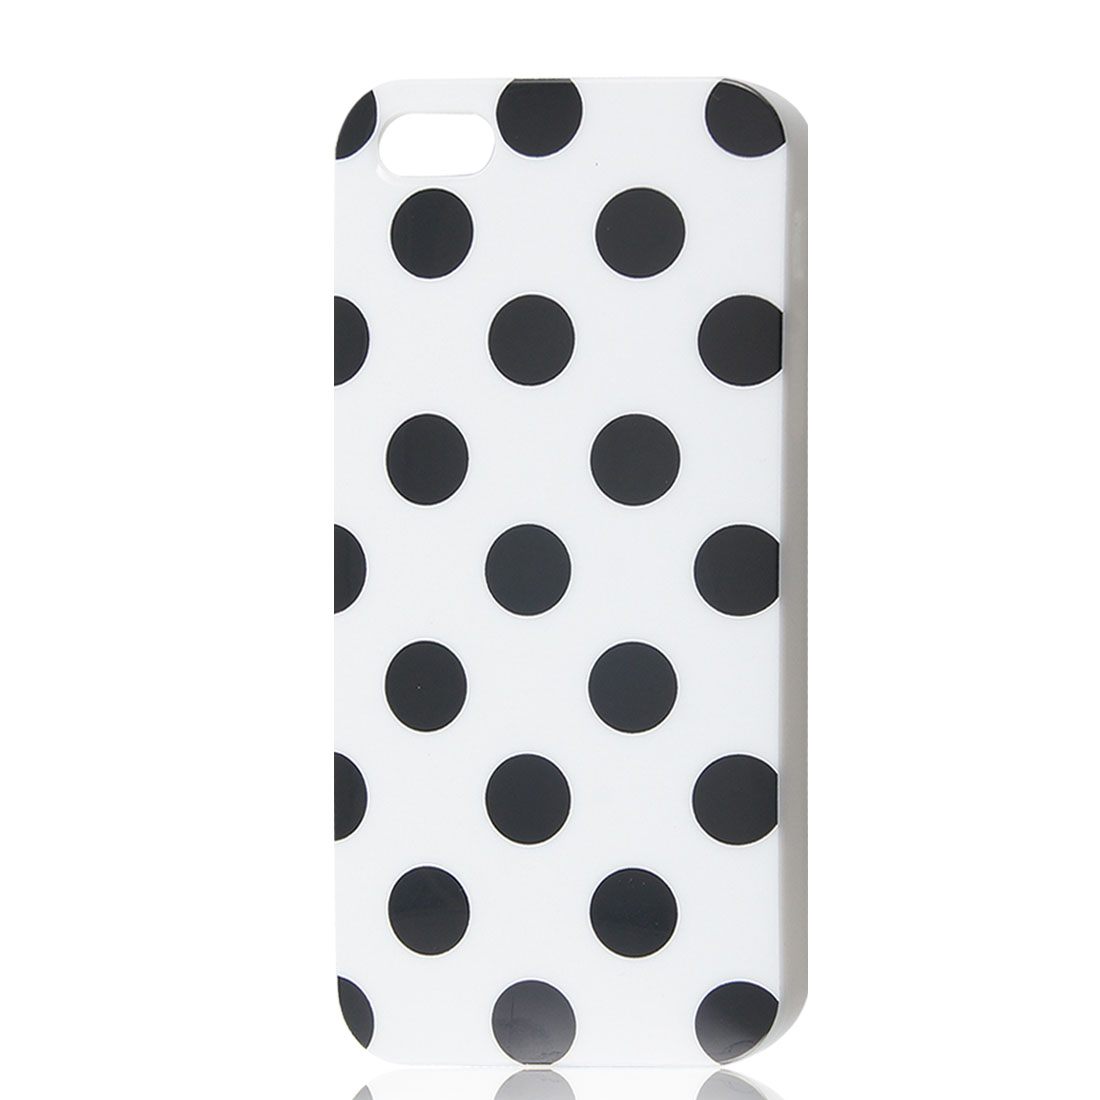 Black Polka Dots White Soft Plastic Case Cover for iPhone 5 5G 5th Gen